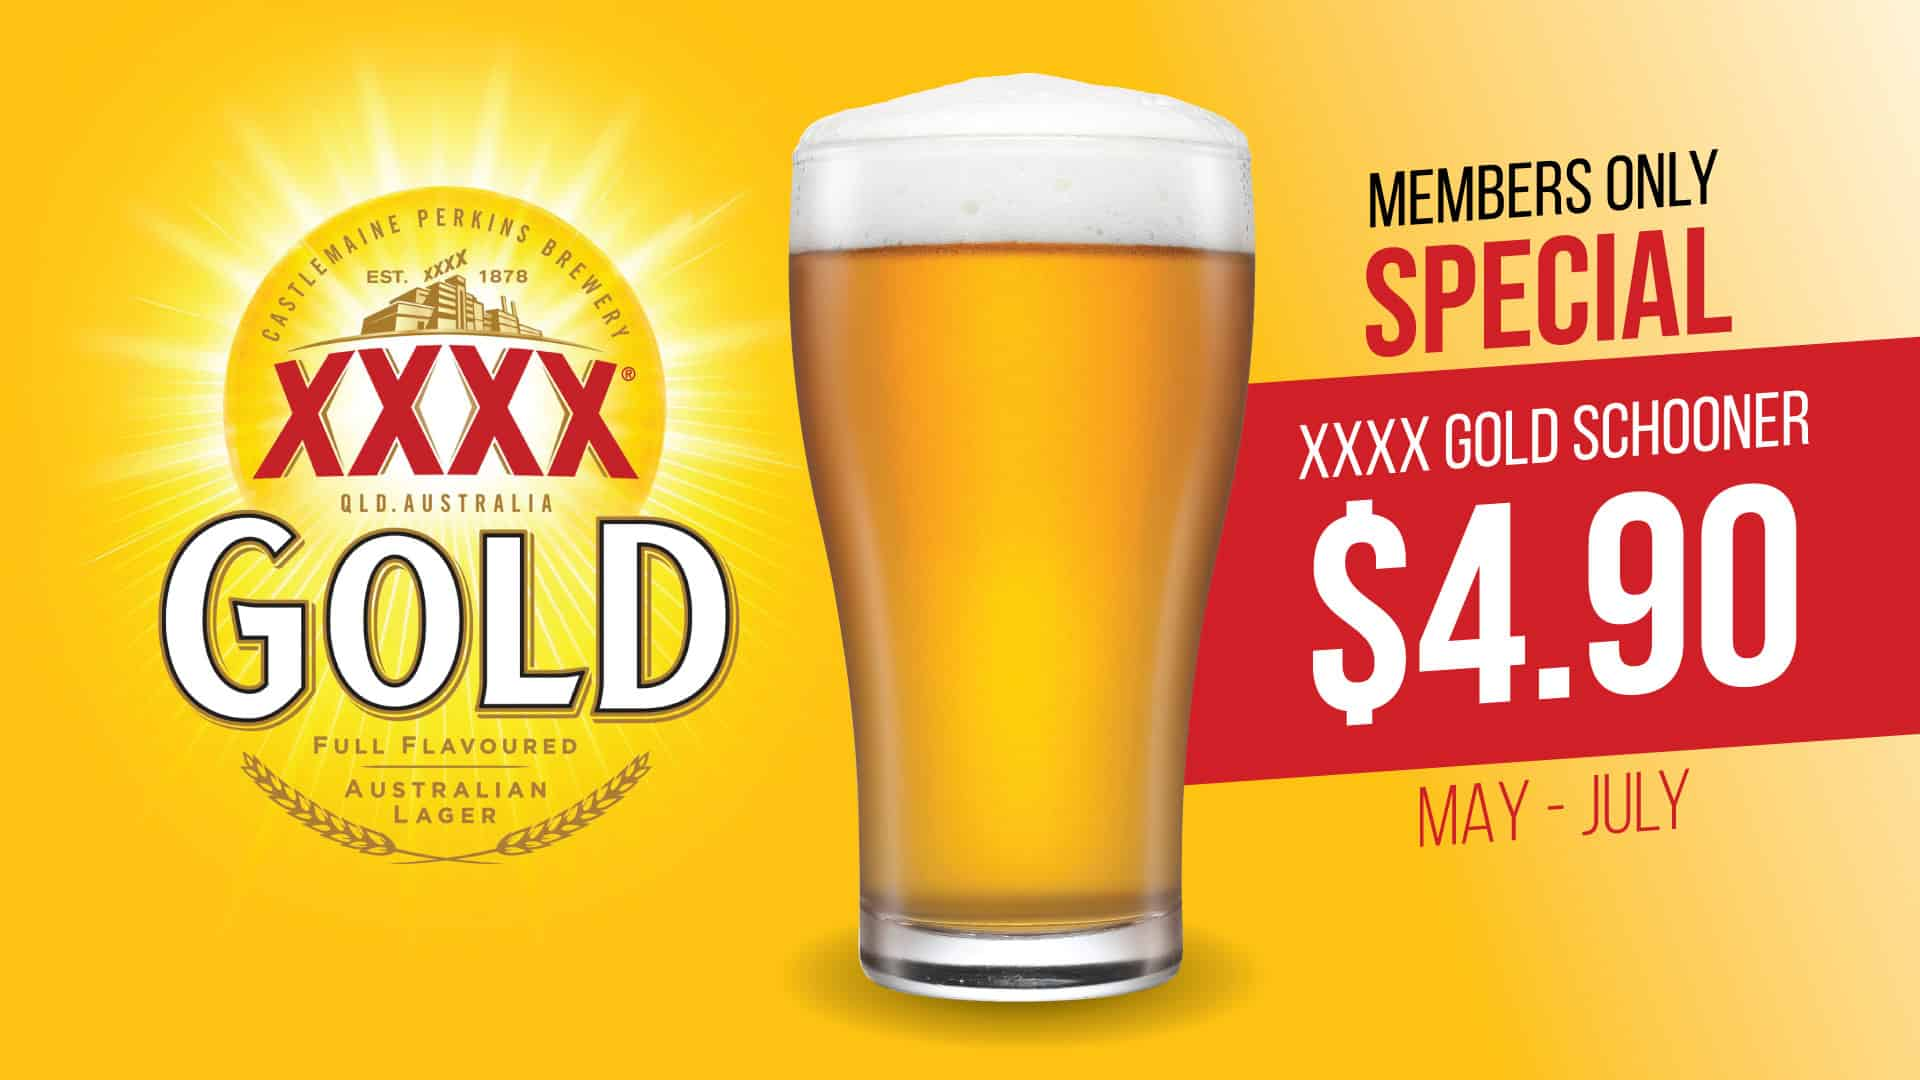 XXXX-Gold-special-IPTV-L – Twin Towns Clubs & Resorts